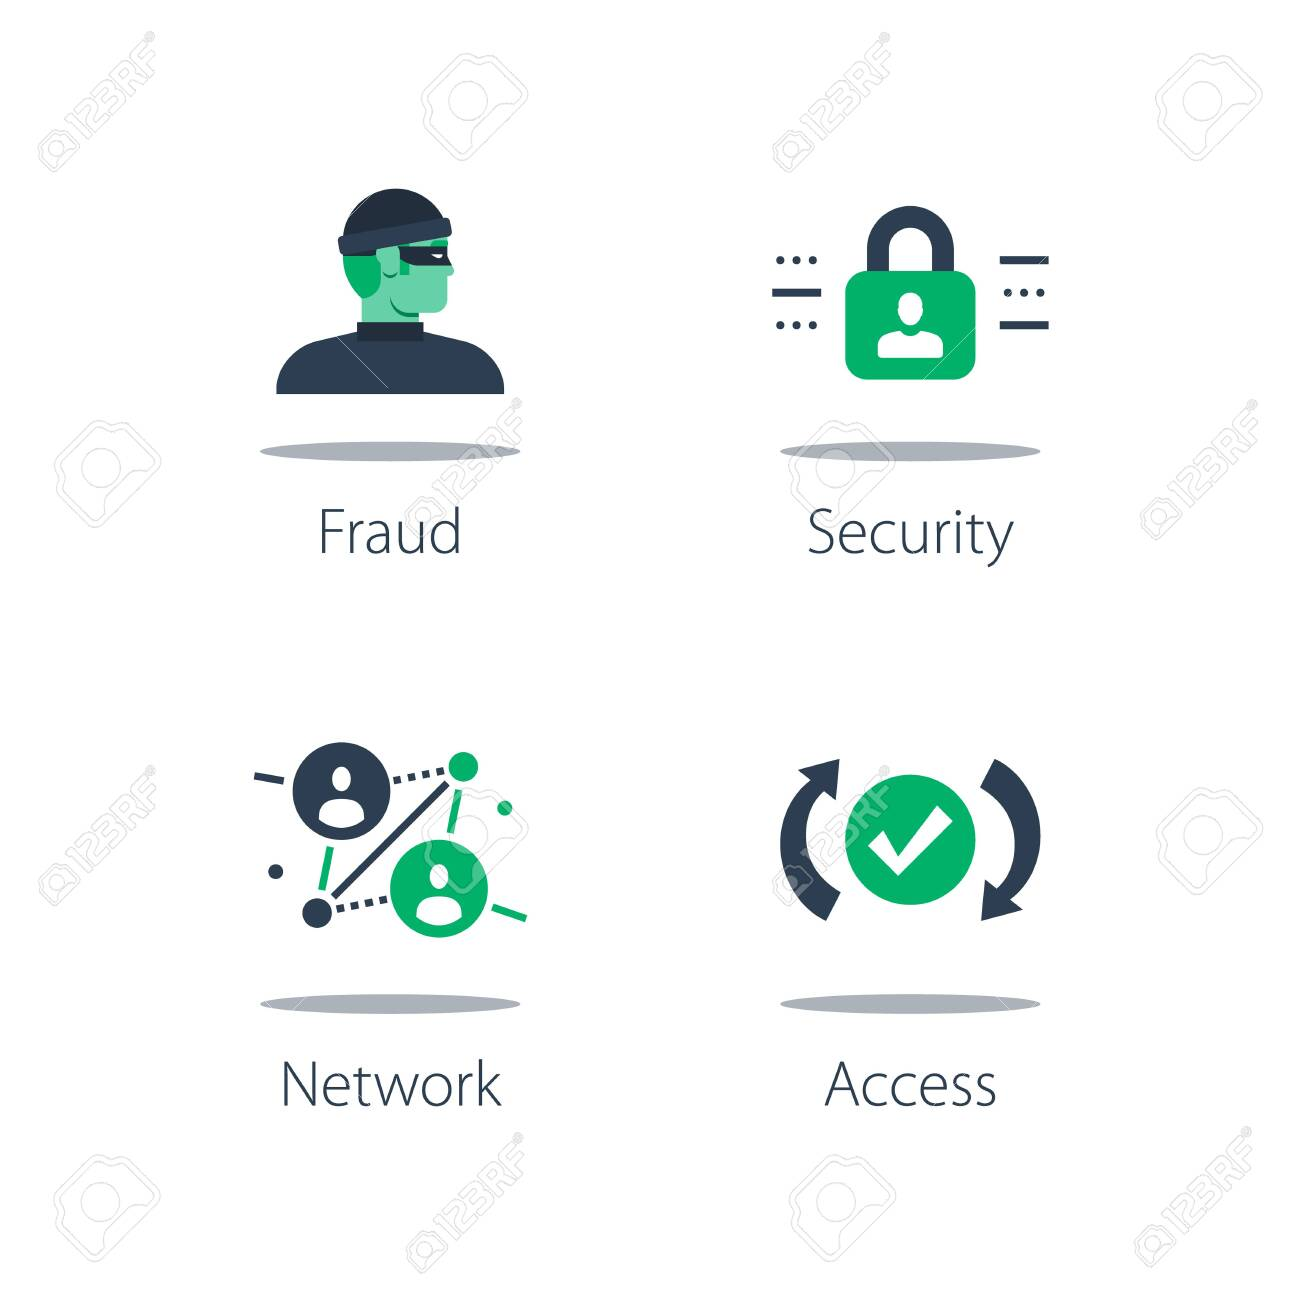 Network security system, online safety, strong protection, web server vulnerability, software solution and data theft concept illustration. - 150814054